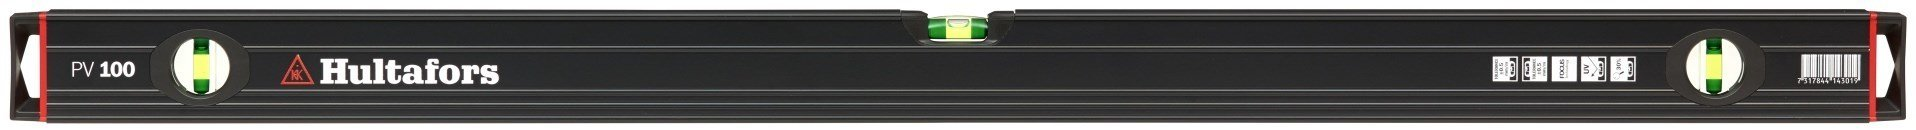 Spirit Level Aluminium PV 100 HU-414301